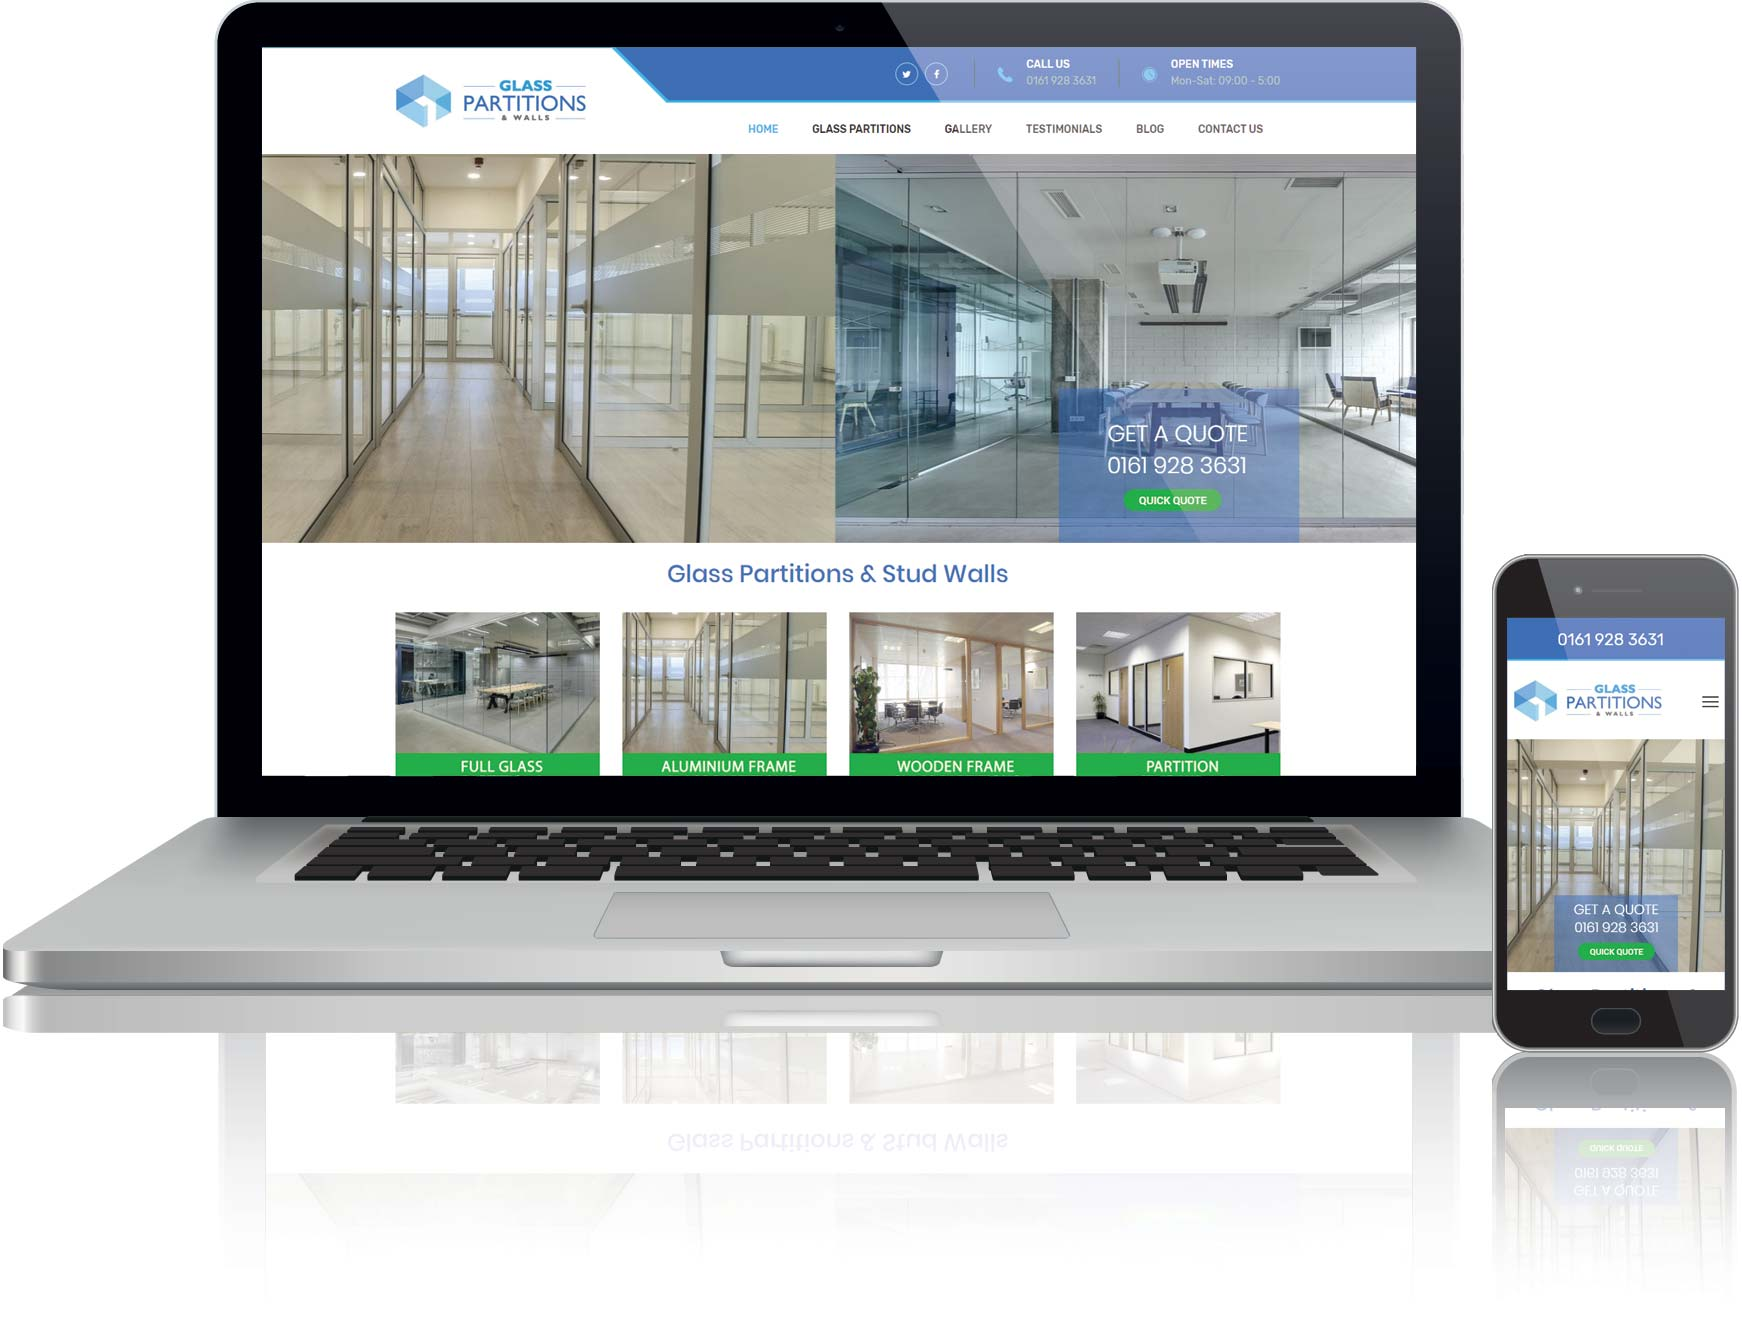 website design for glass partitions company in Manchester